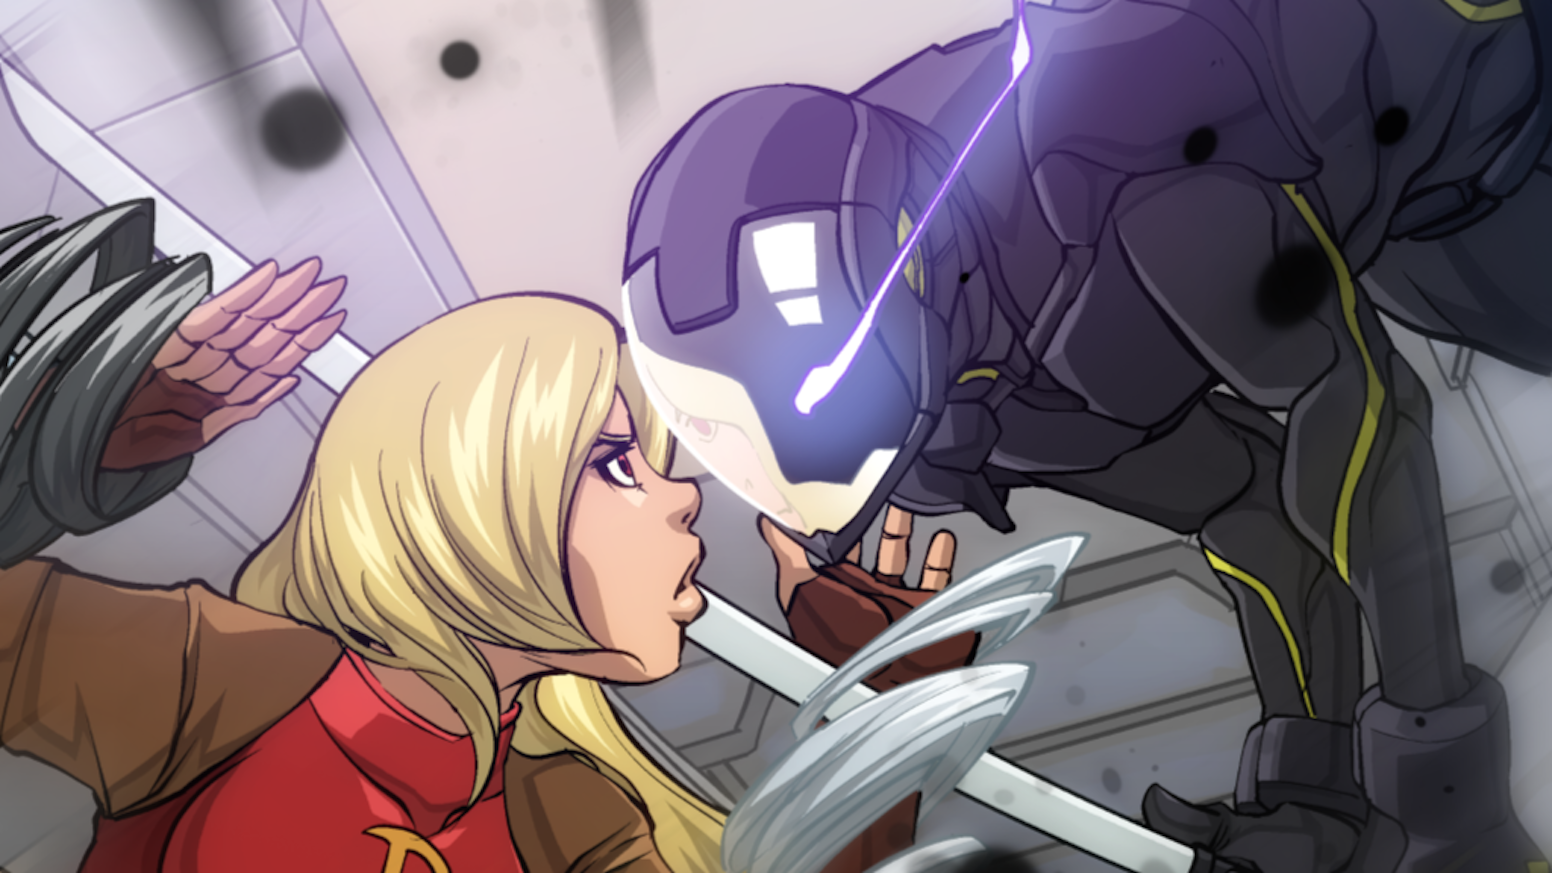 R:ILPERSONA Volume 1: The Etheric Mastery Edition- a 3rd anniversary collected edition of the weekly sci-fi fantasy webcomic series